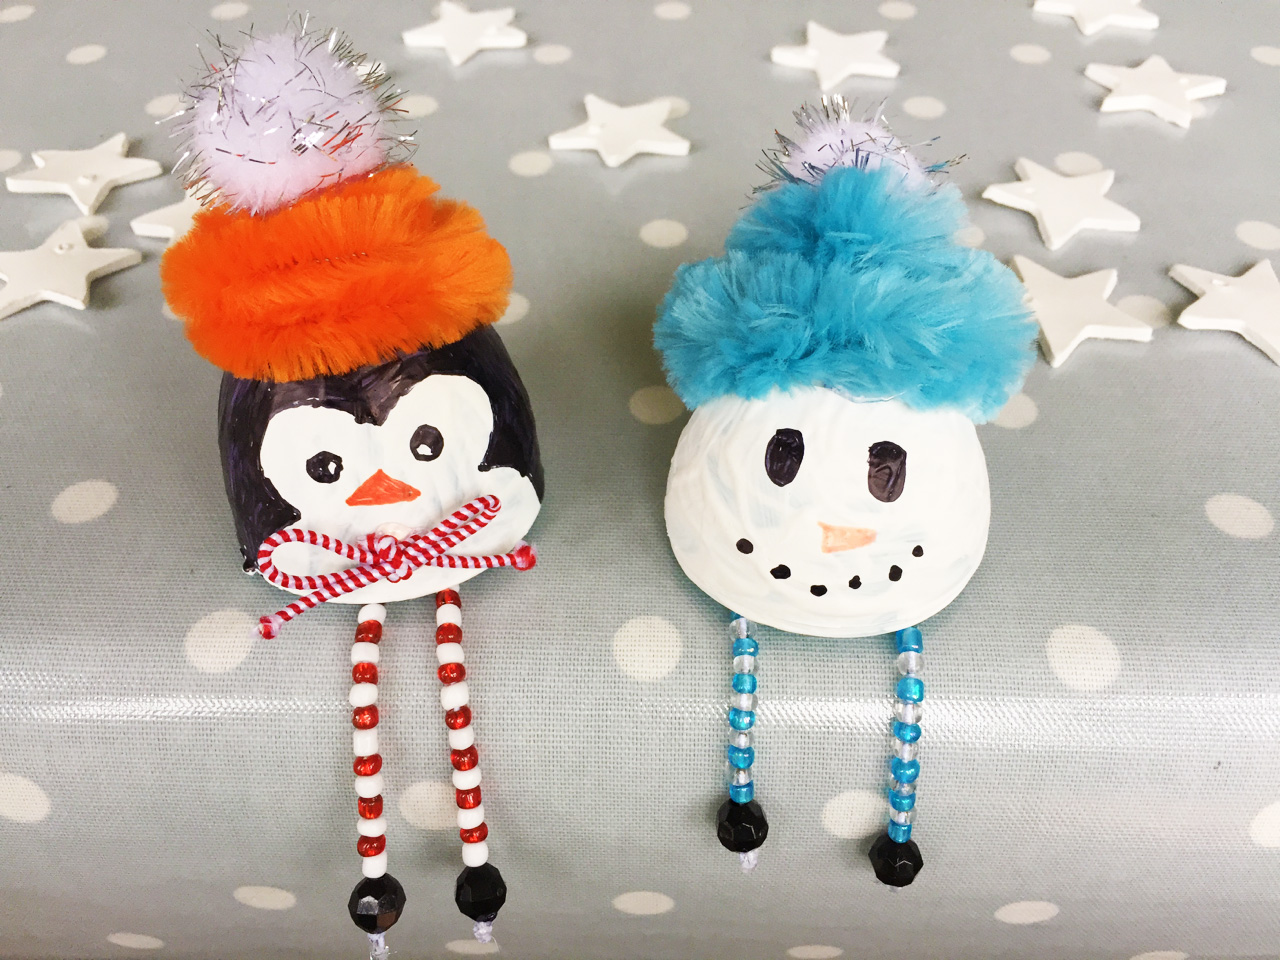 Cute Christmas Egg Head Decorations